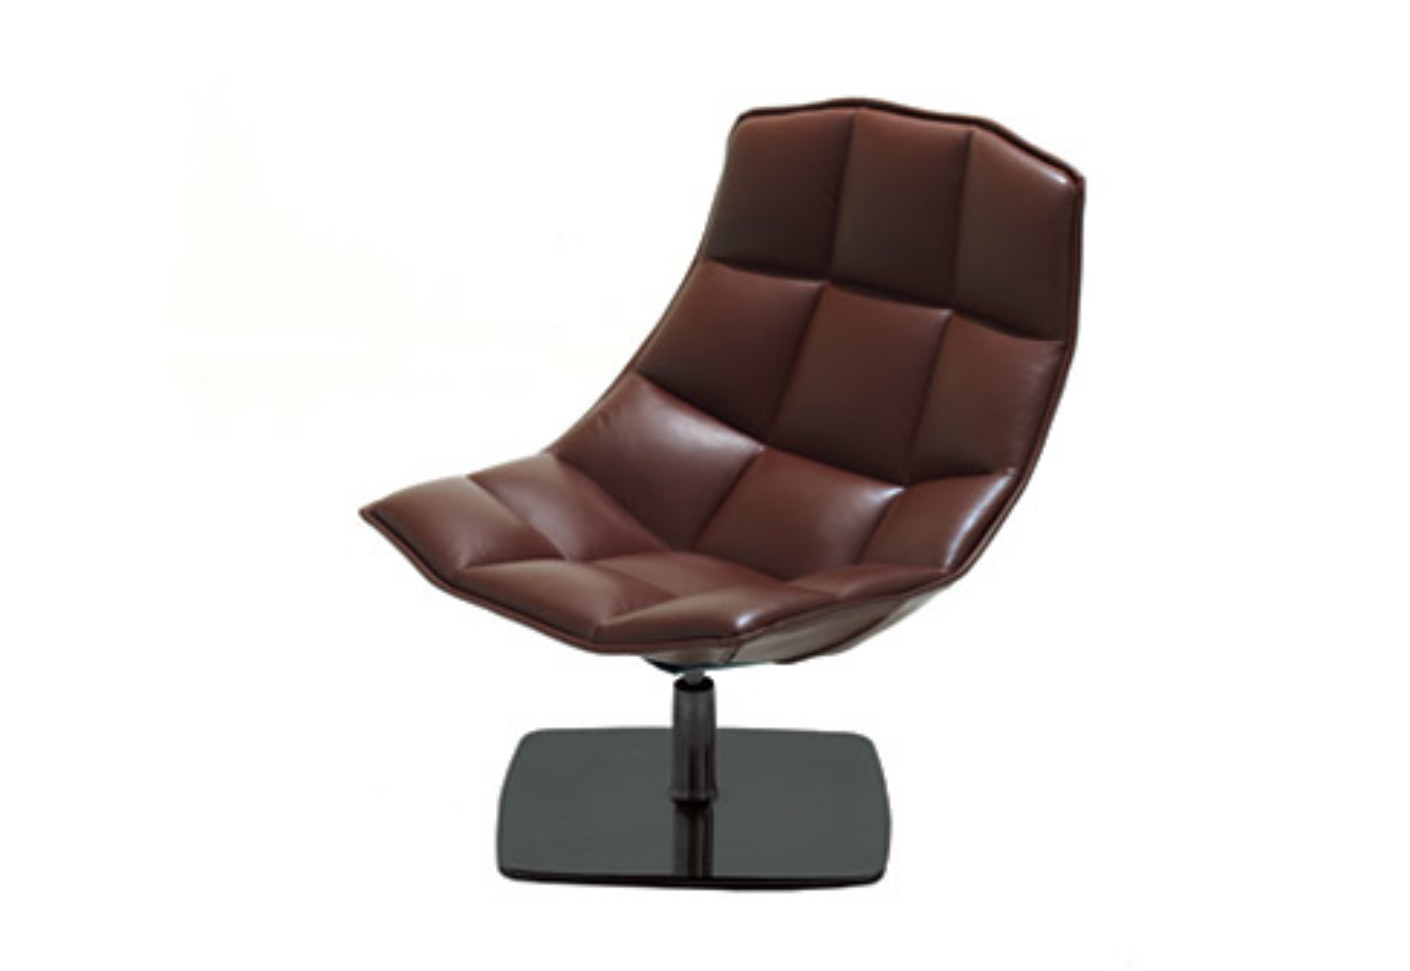 Jl Swivel Lounge Chair By Knoll Stylepark